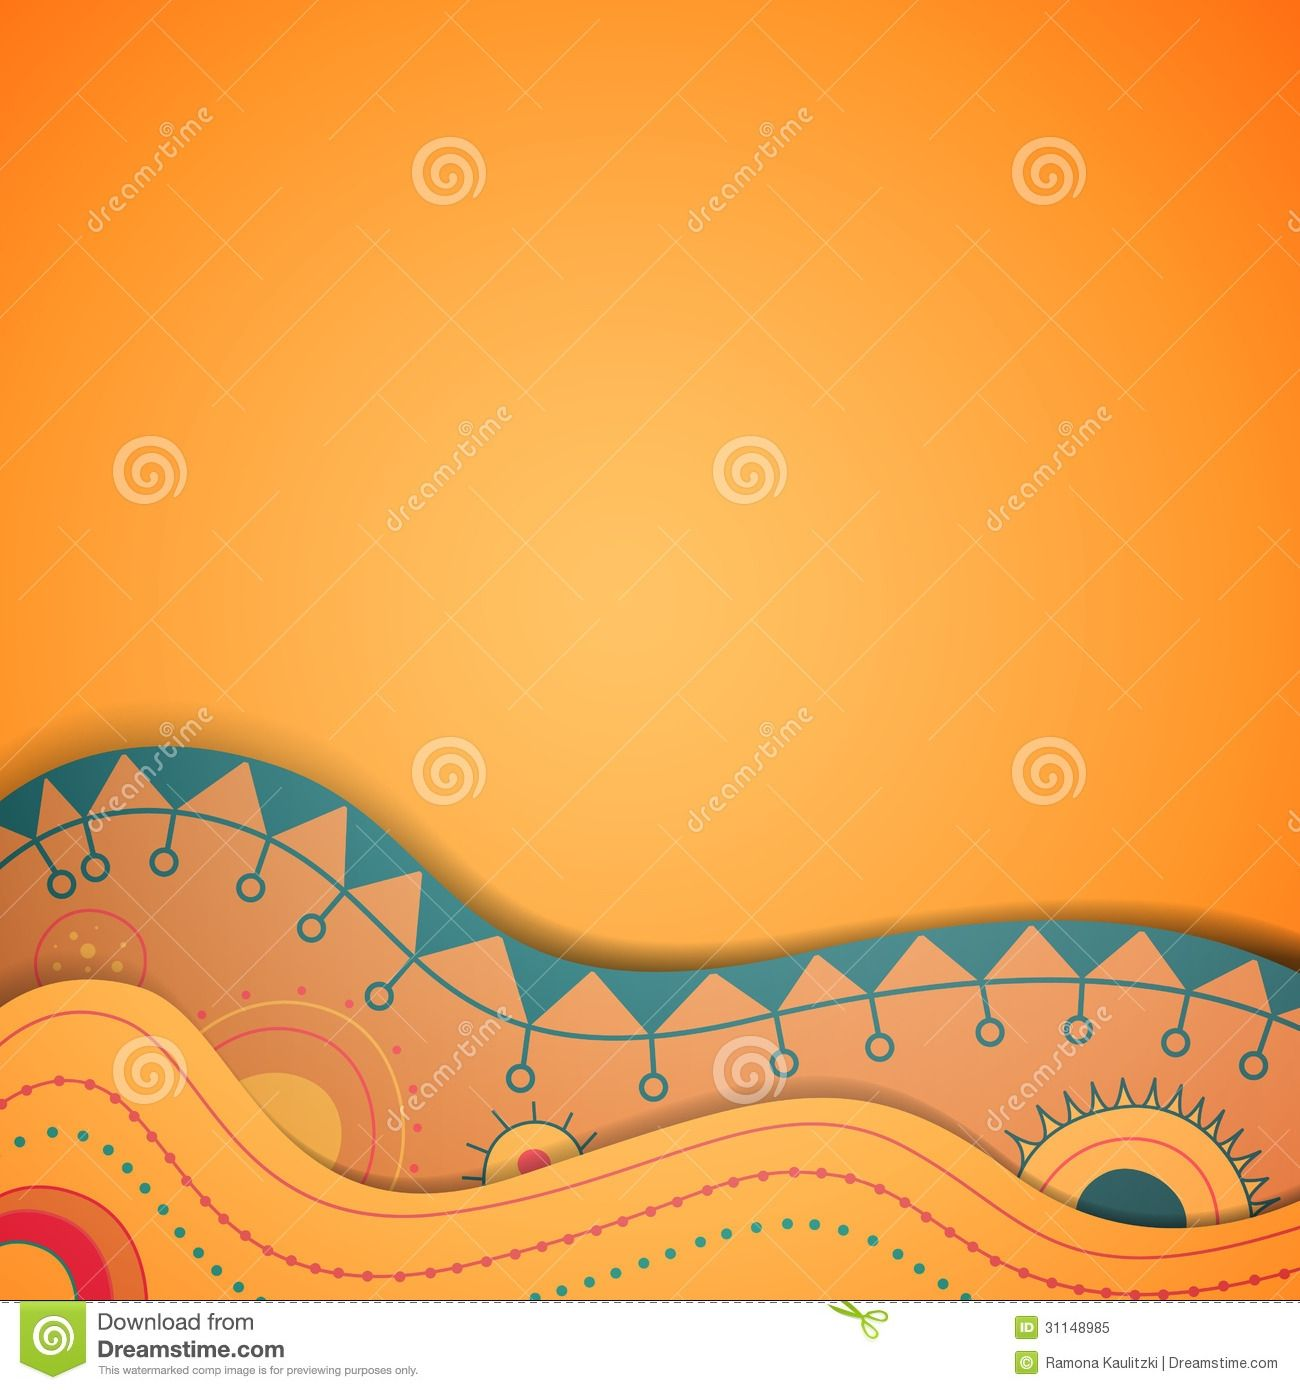 Hd Graphic Design Background Images Free Download Colorful Graphic Design Royalty Background Images Free Download Background Images Free Stock Photos Image